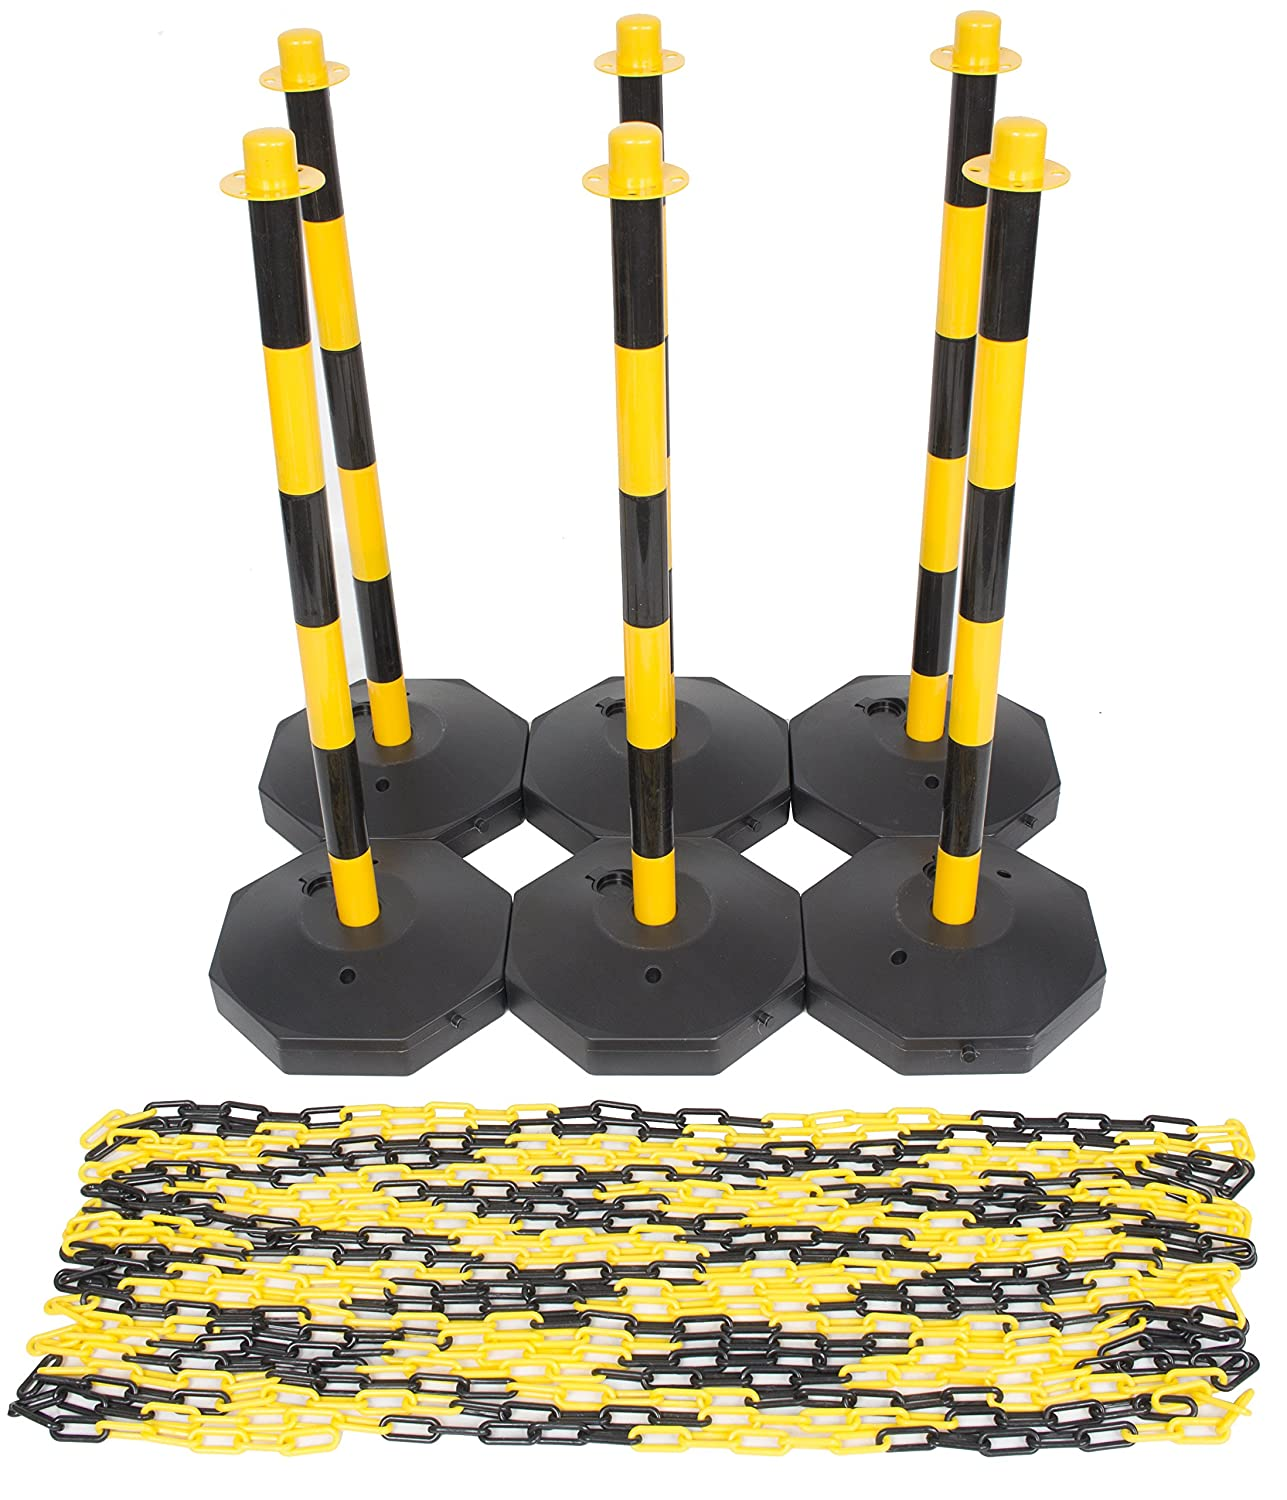 (6 Pack) Yellow & Black Plastic Chain Post Set Demarcation Safety Chain Barrier Post Pole with Base and 15mtr Plastic Chain SafetyLiftingGear